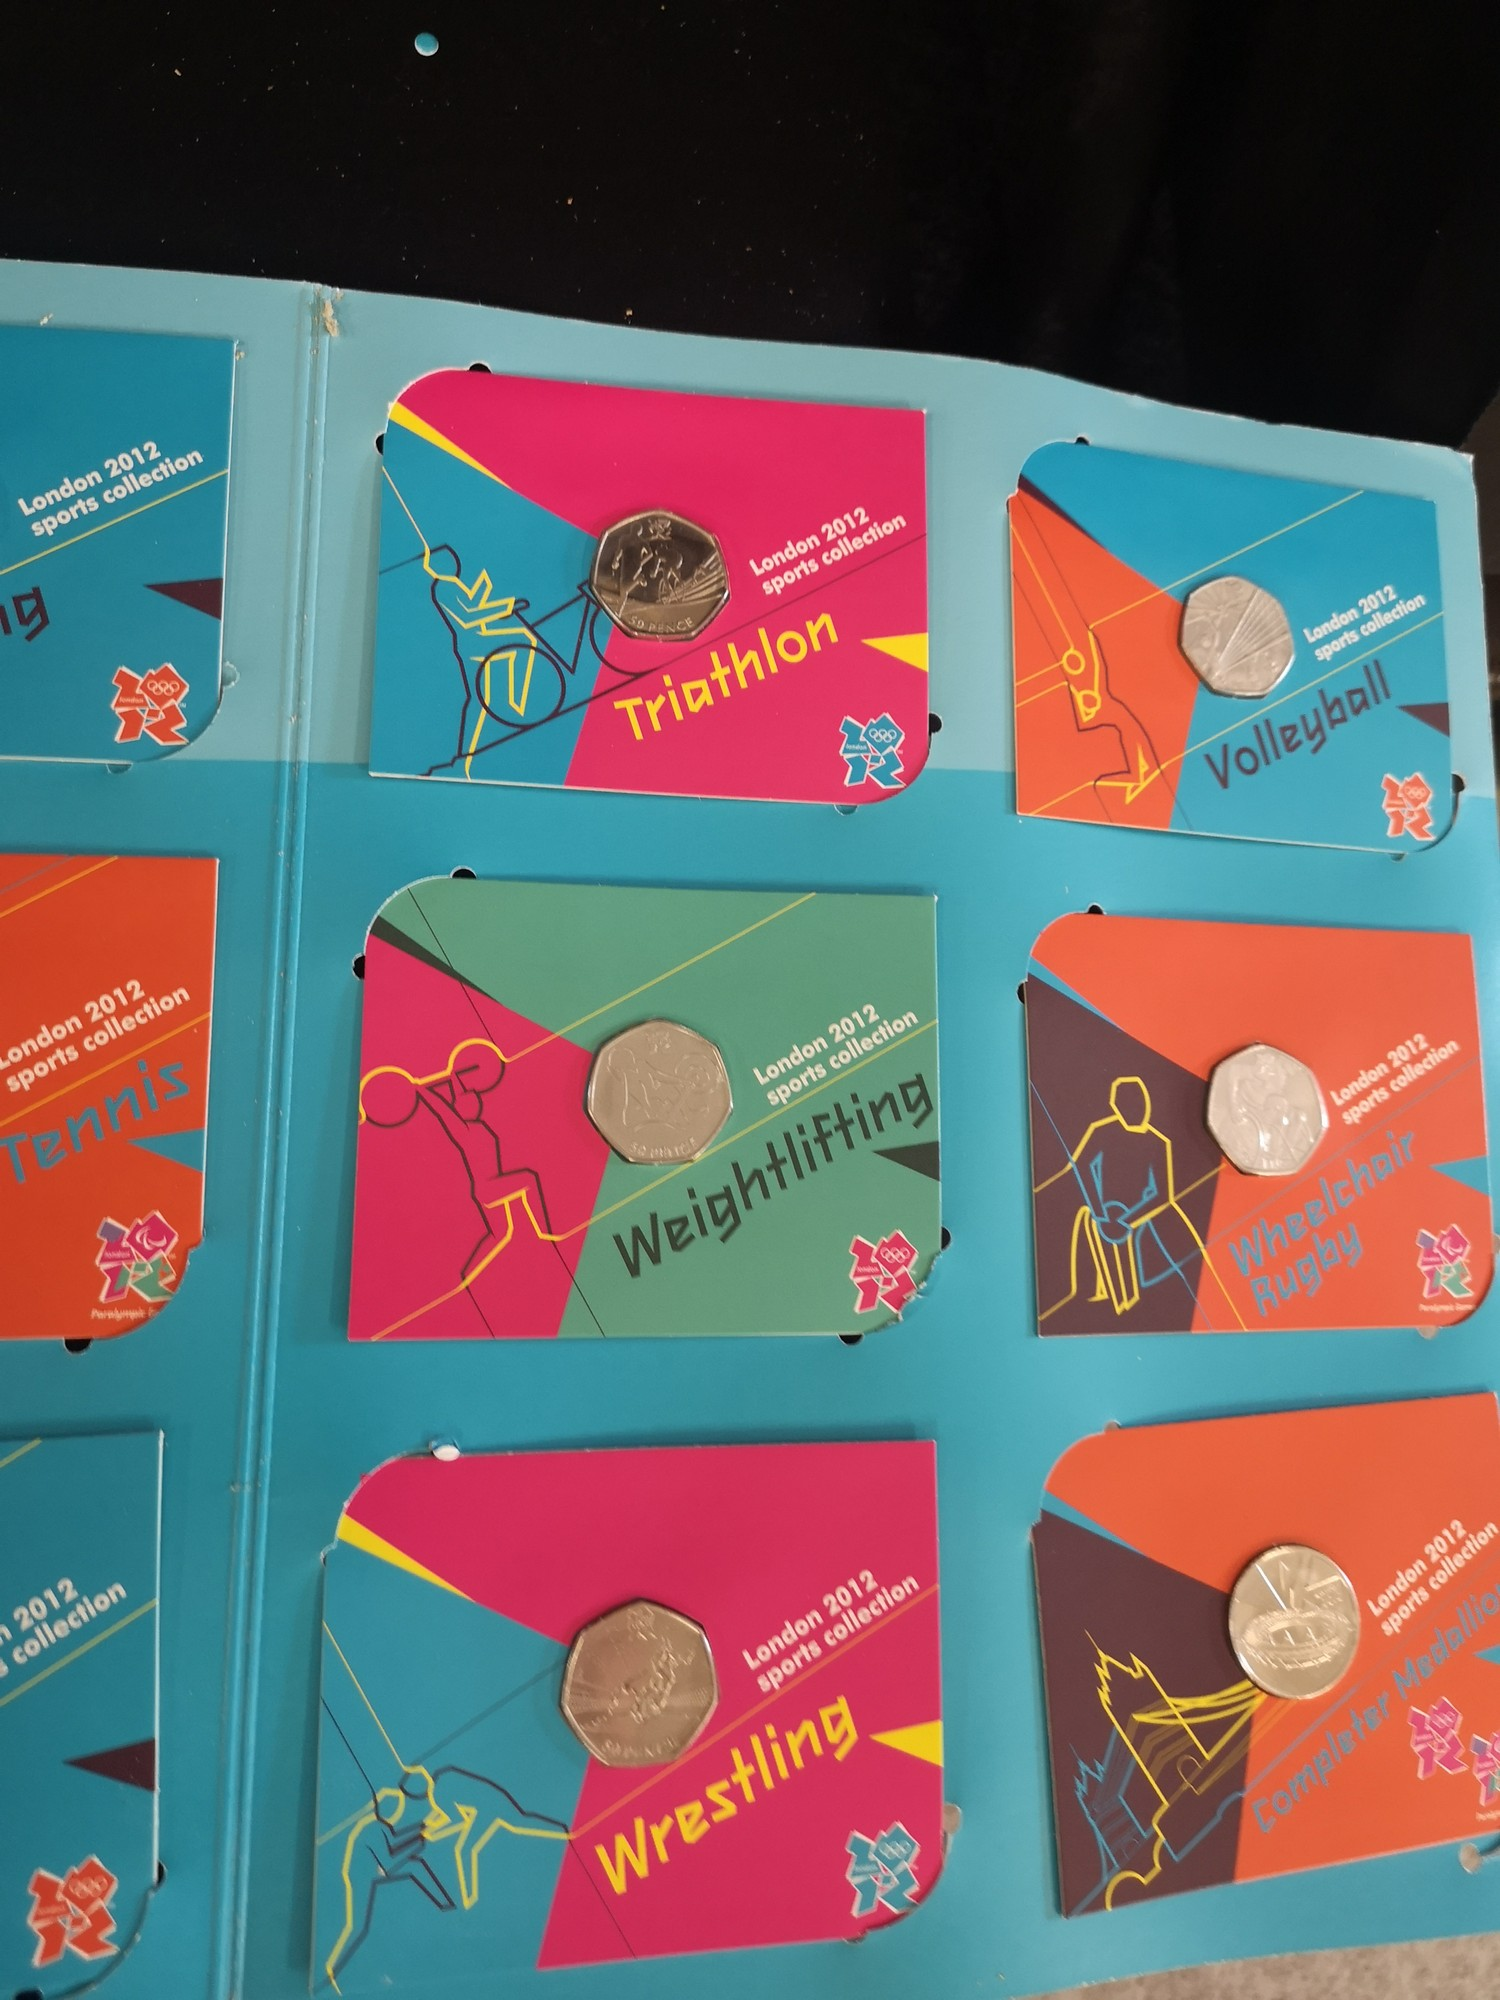 London Olympics 2012 sports collection album complete. - Image 2 of 6